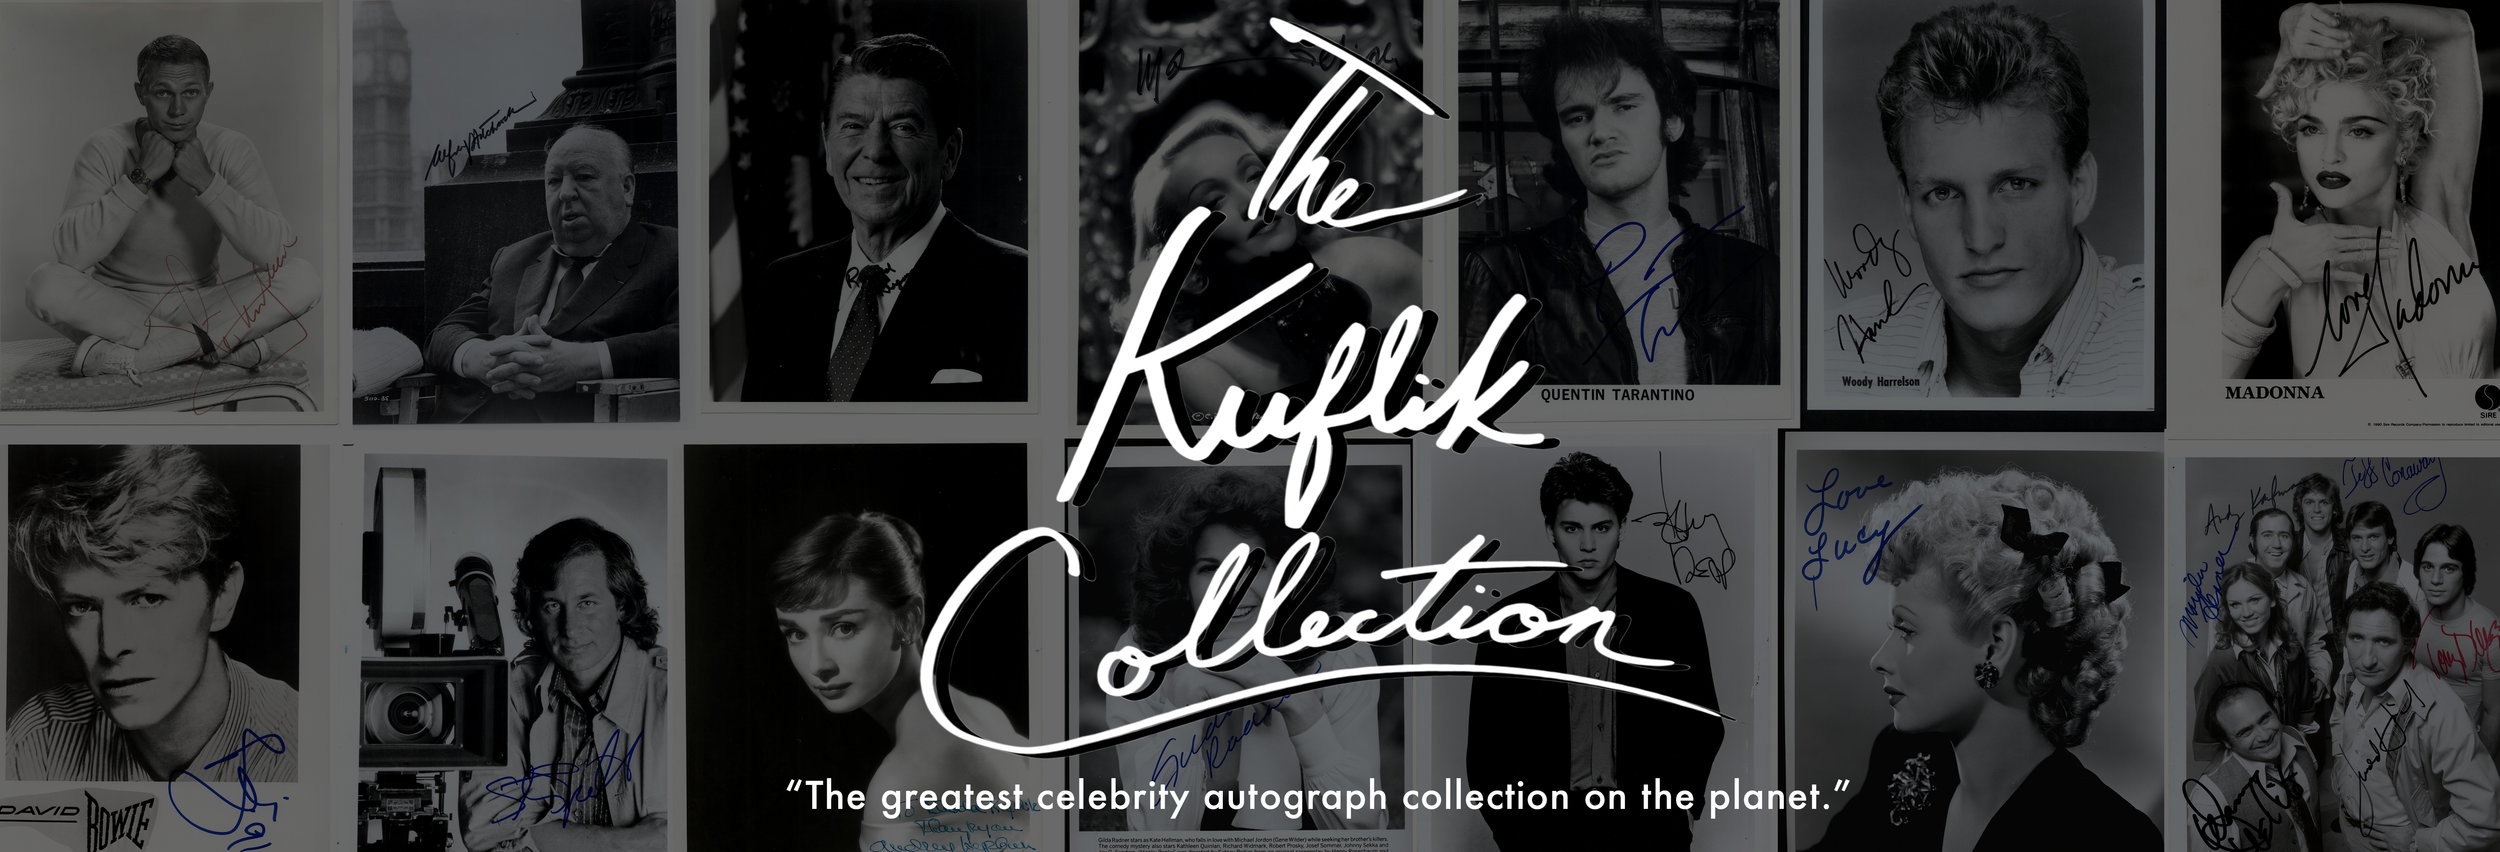 Kuflik Collection